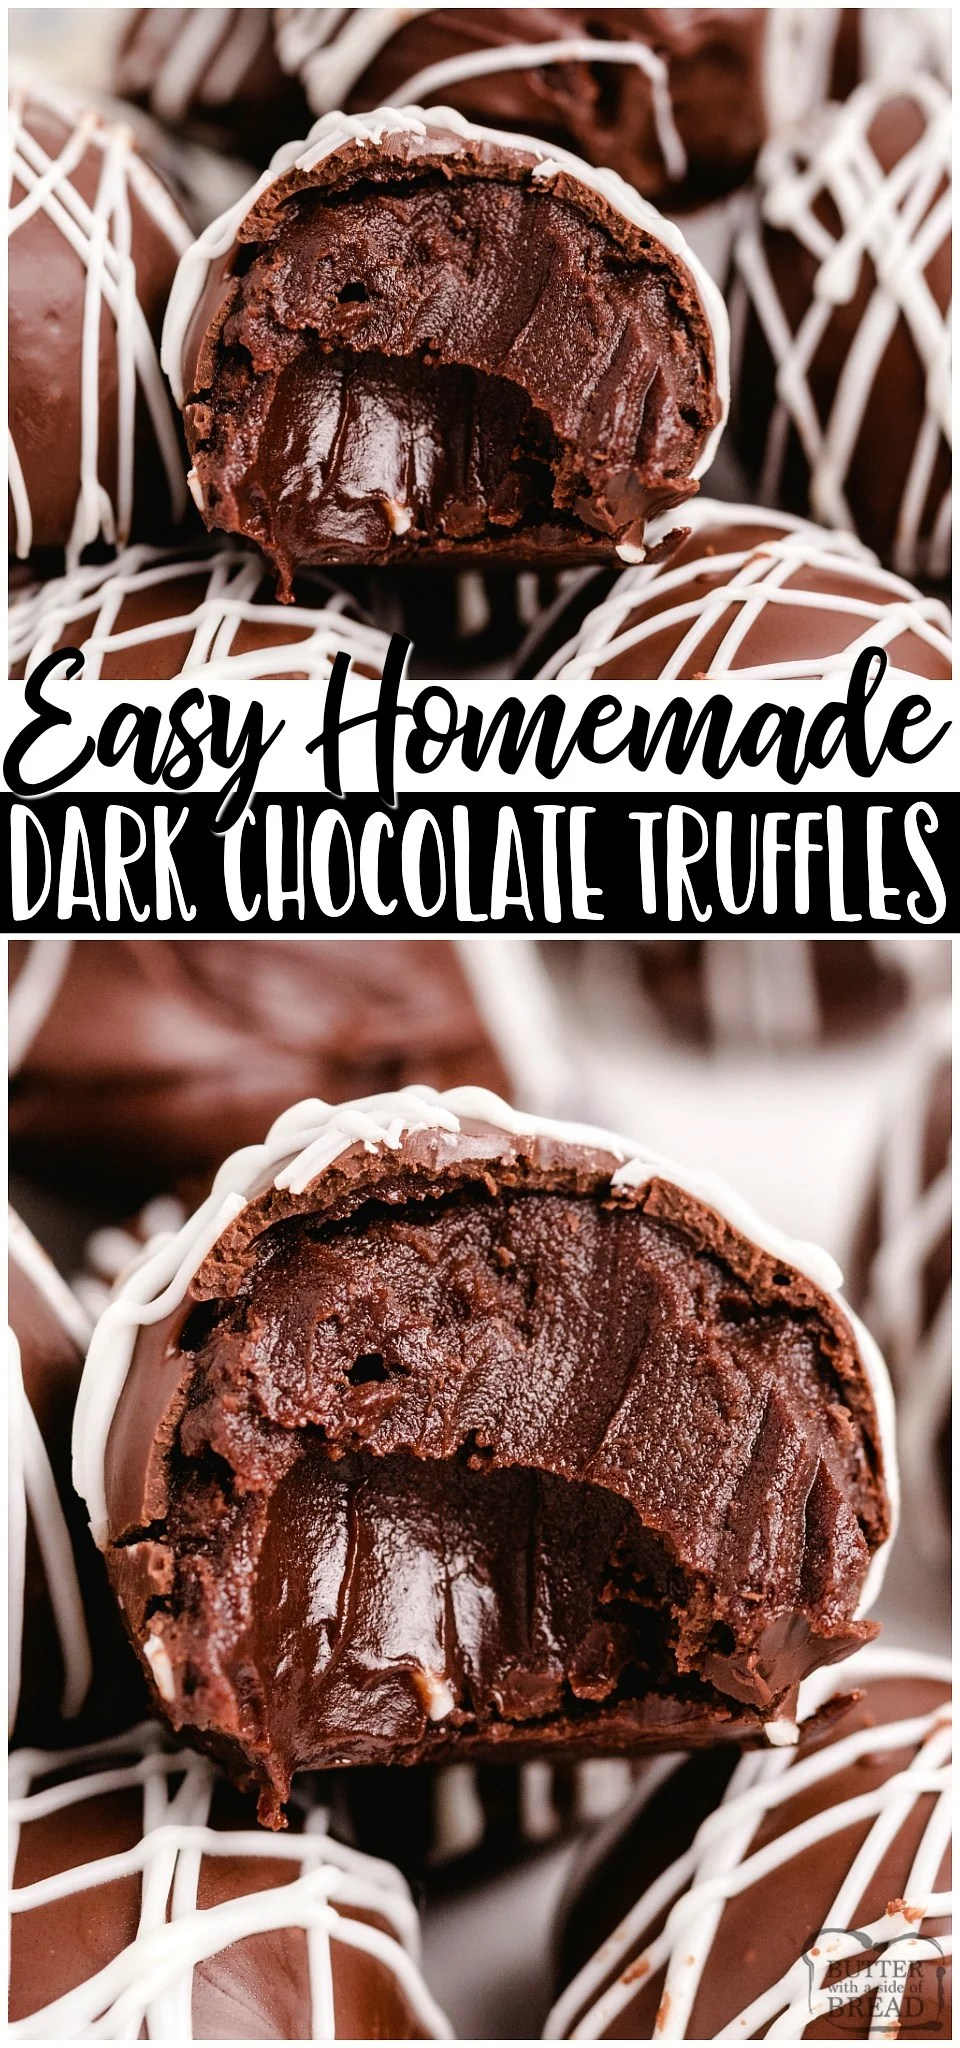 Homemade Dark chocolate Truffles made with just 5 ingredients and SO amazing! Chocolate chips, heavy cream and butter combine for a rich & smooth luscious chocolate truffle filling you make easily at home! #chocolate #truffles #homemade #candy #dessert #easyrecipe from BUTTER WITH A SIDE OF BREAD